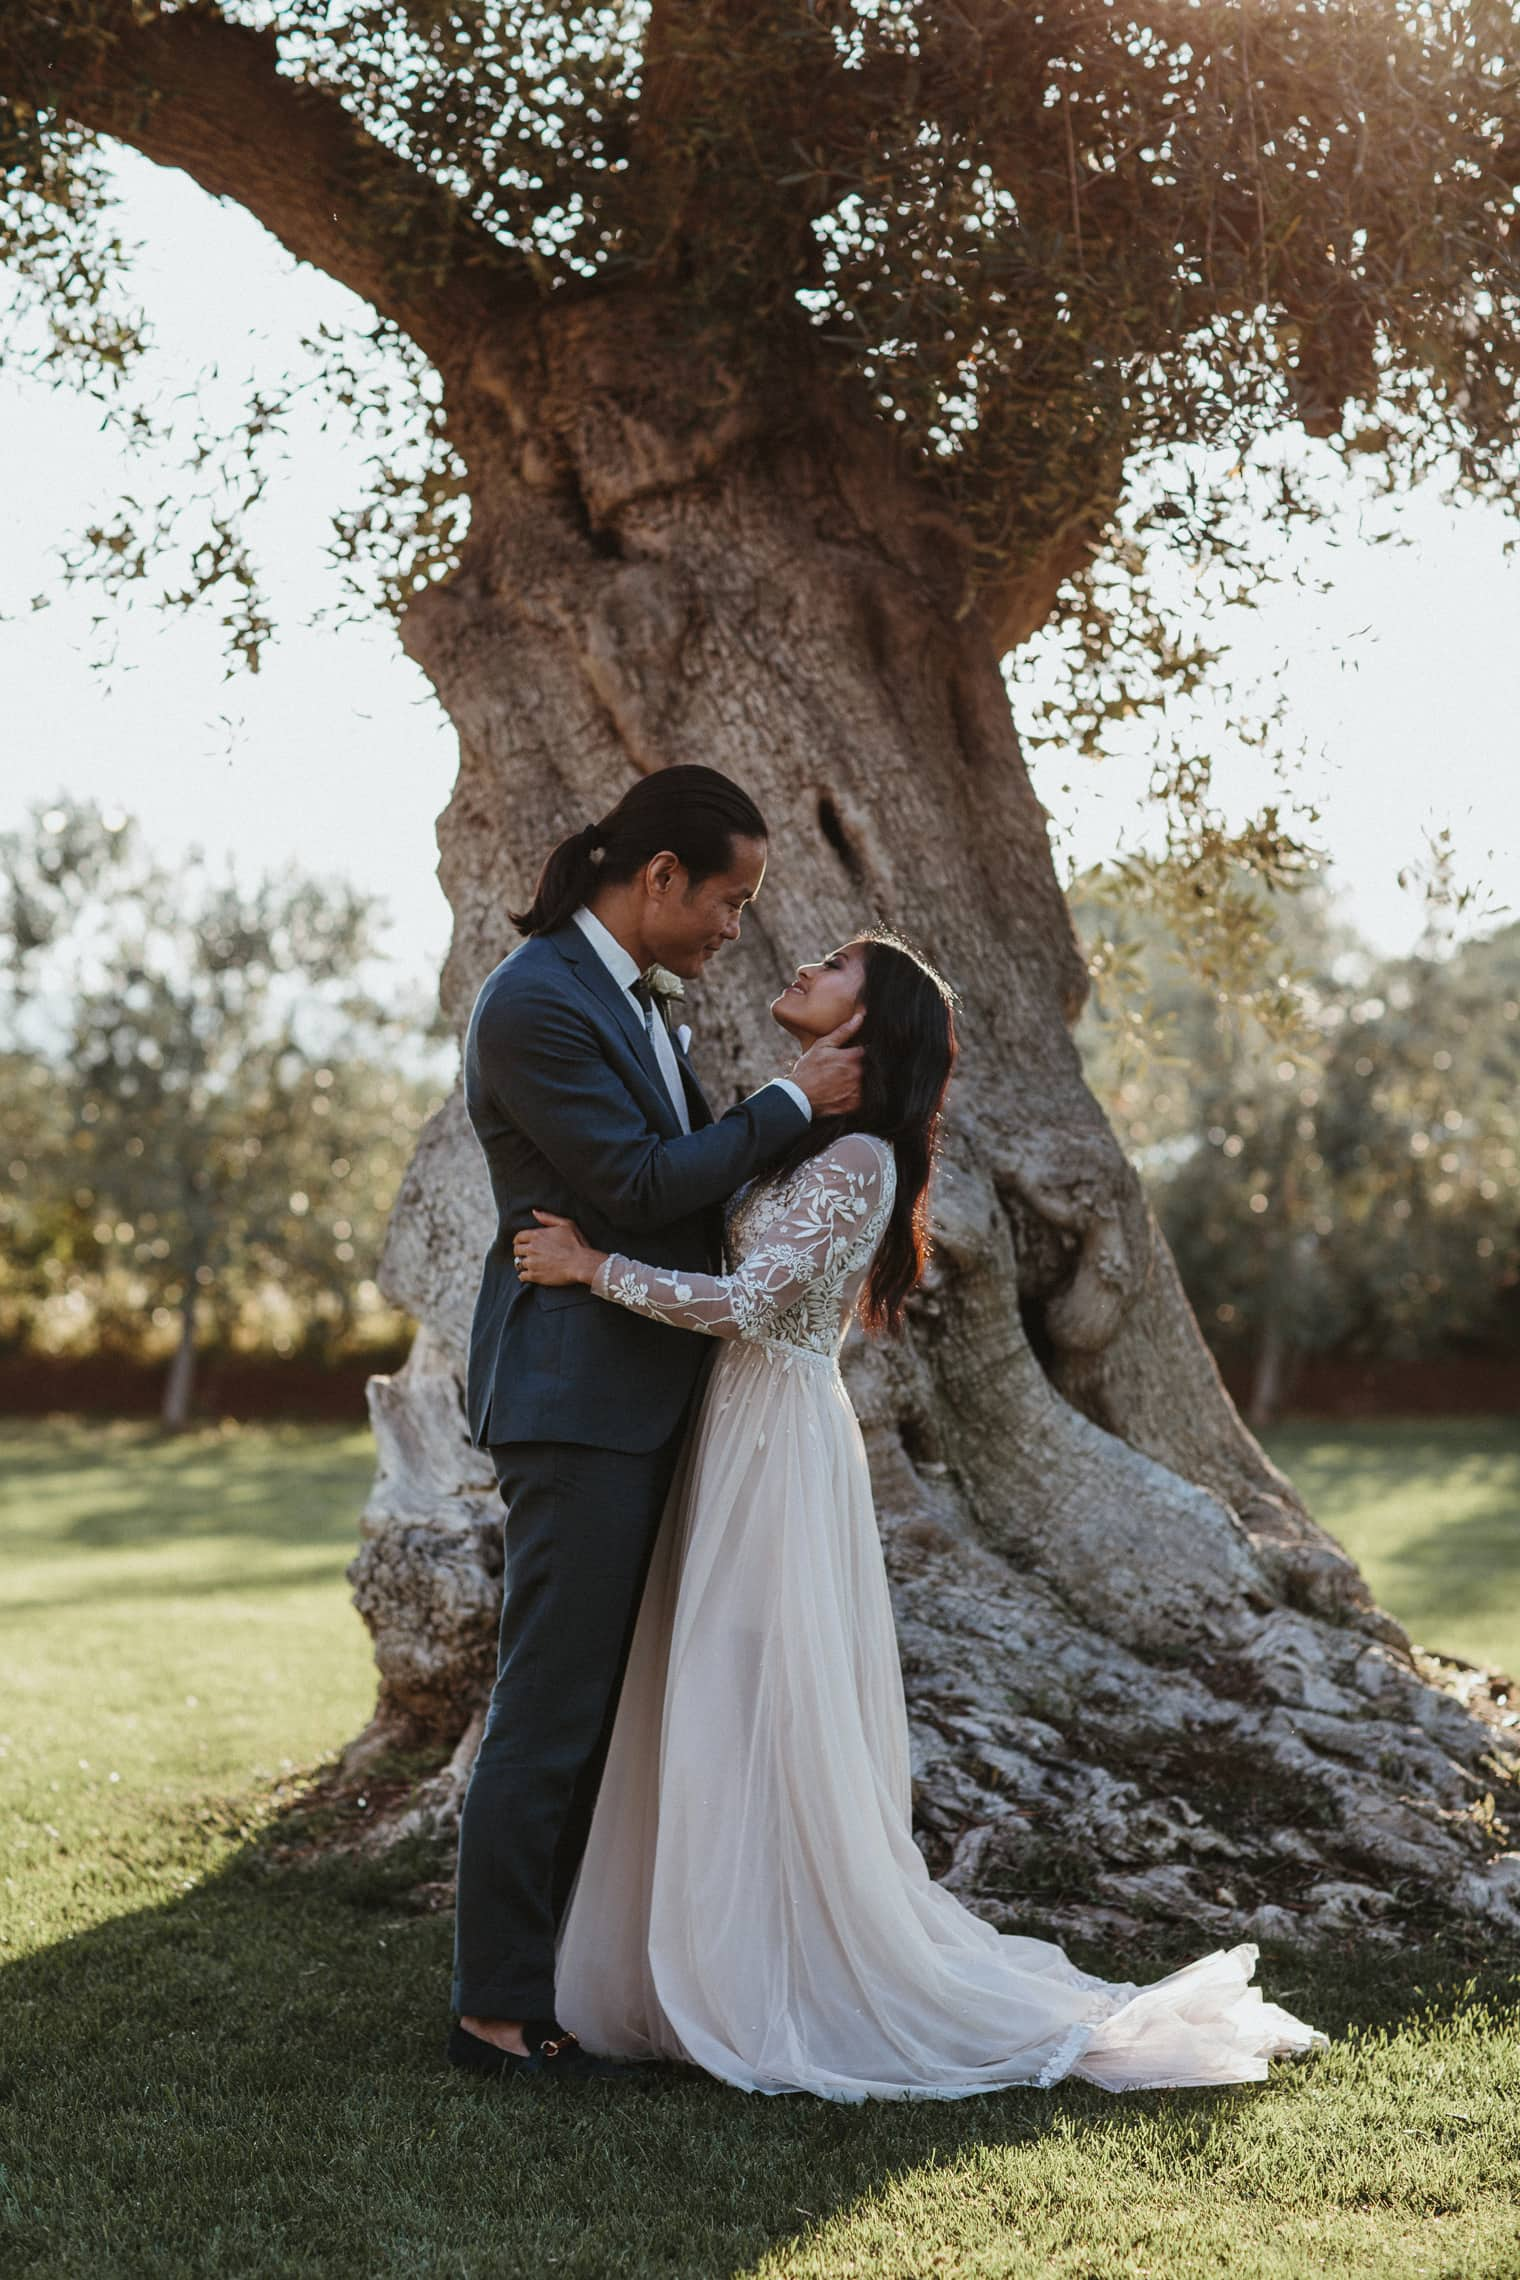 Bride and Groom at masseria torre coccaro in the sun under an olive tree